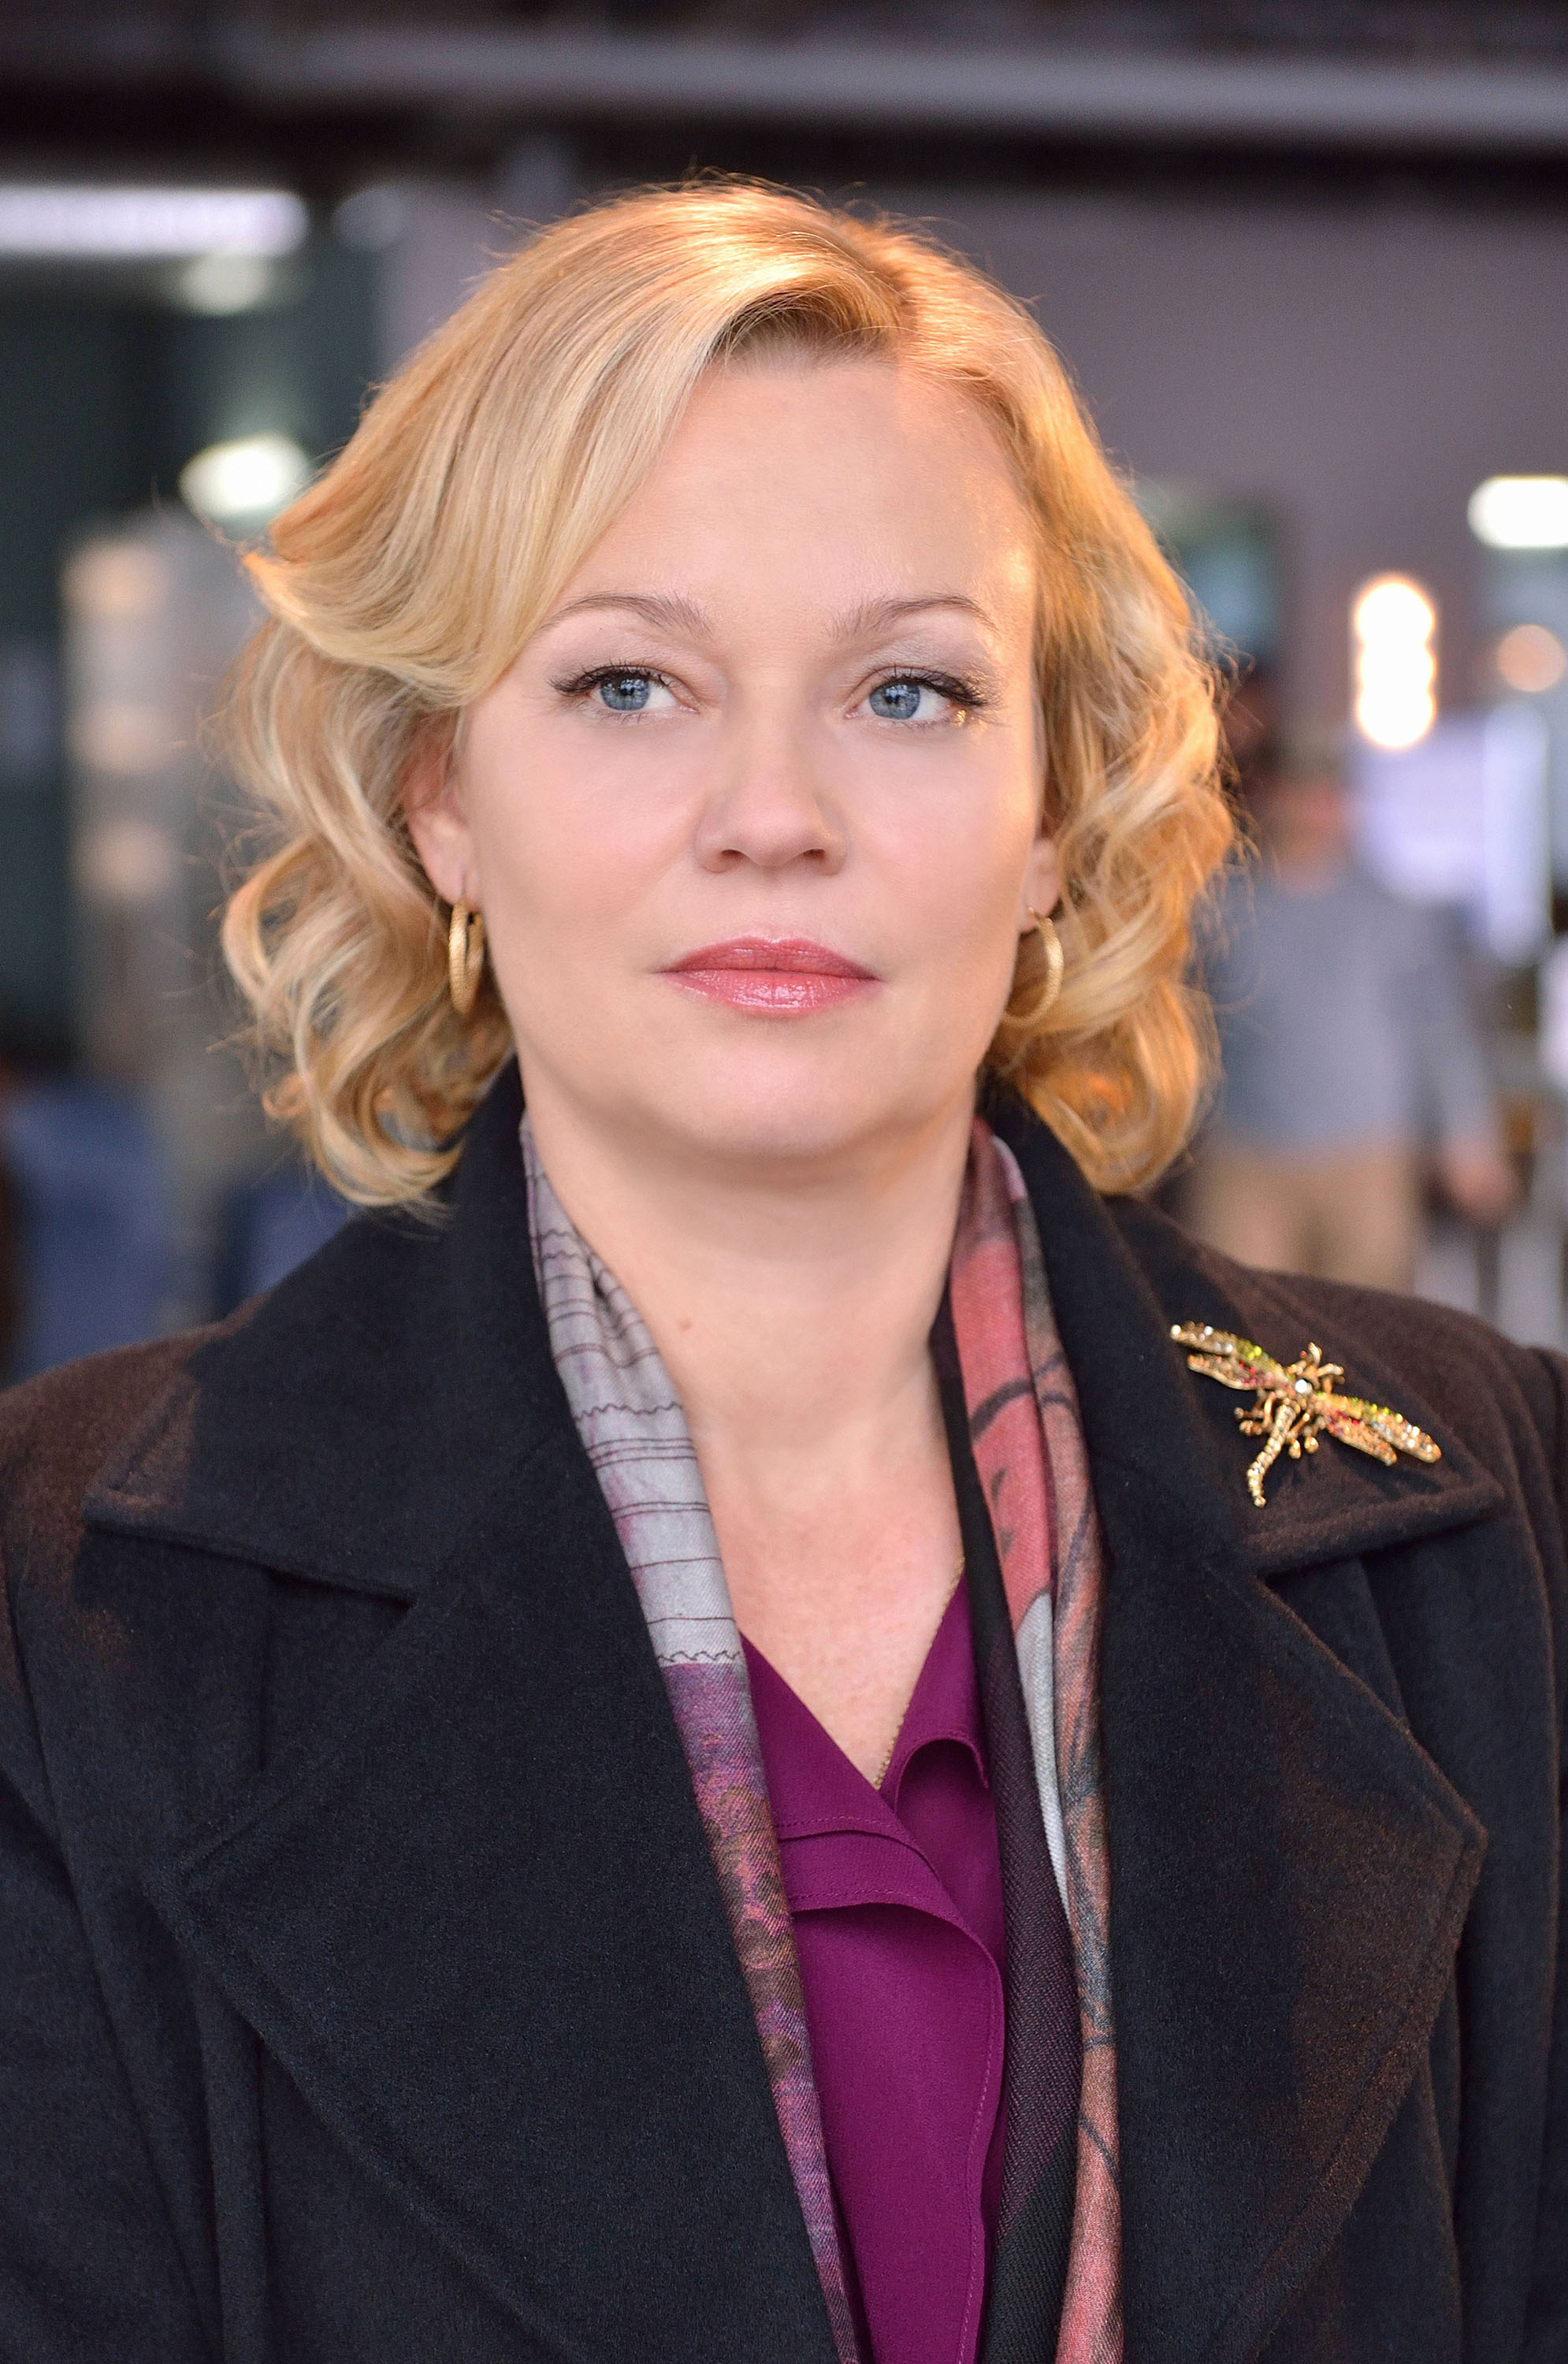 Samantha Mathis Is On A Mission in FX' The Strain ... Samantha Mathis